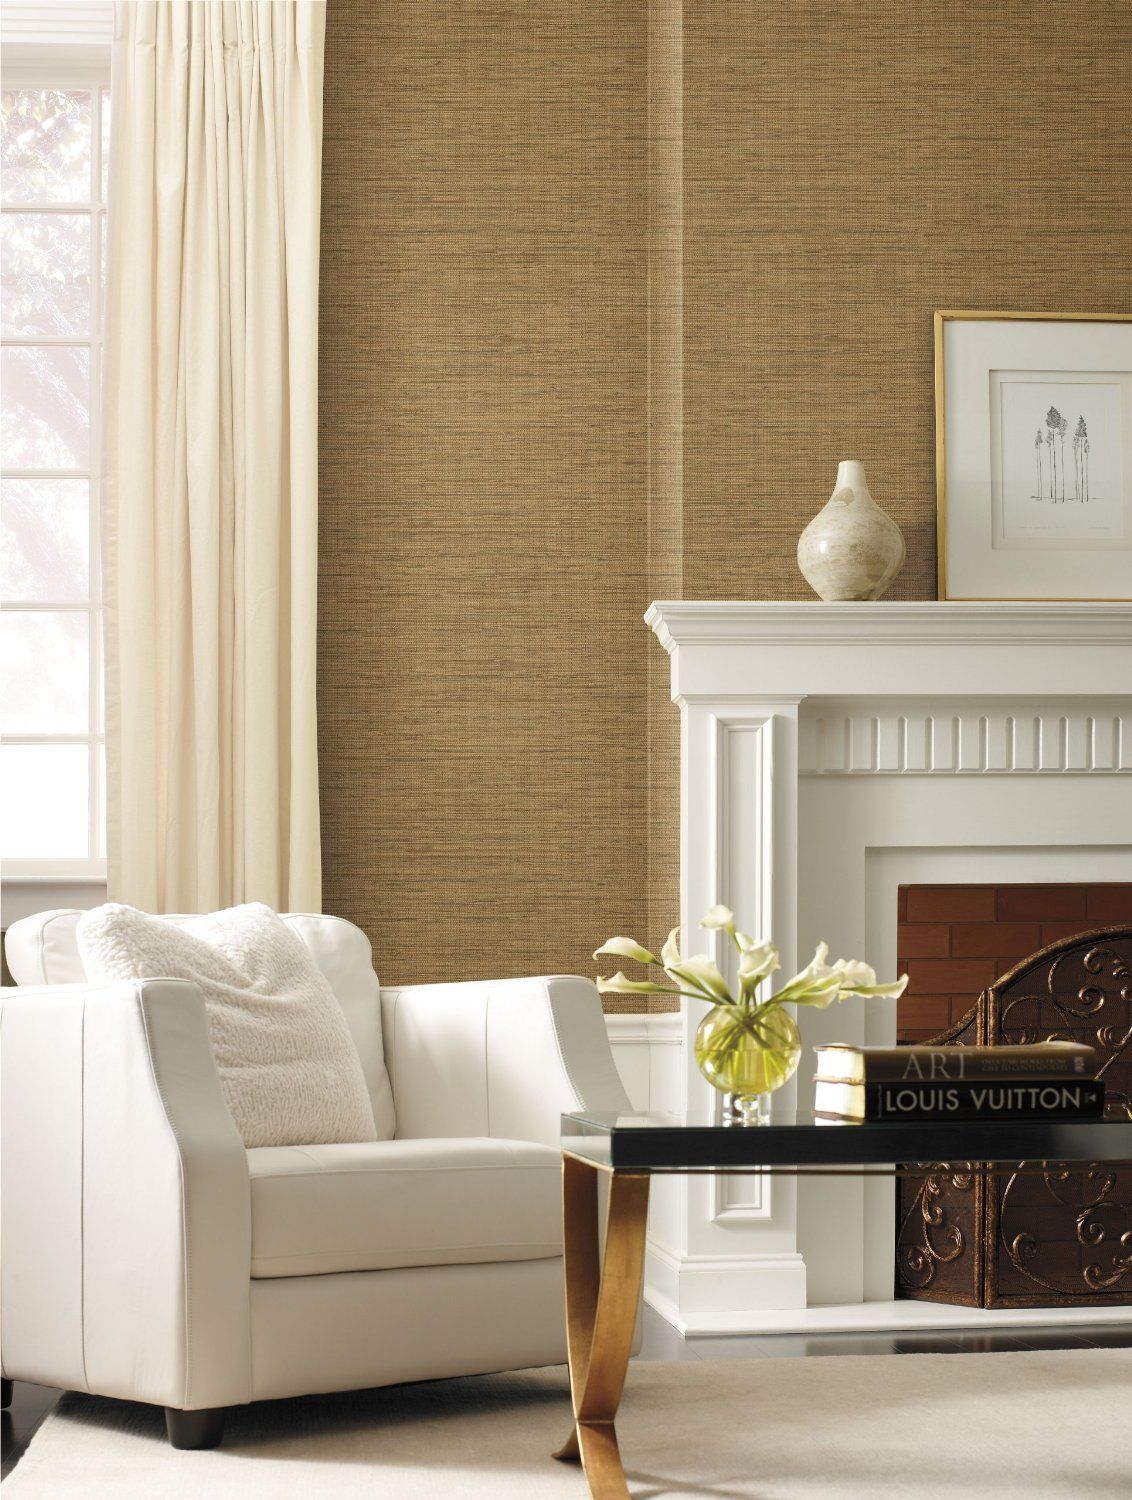 York Wallcoverings By The Sea FN3733 Faux Grasscloth Wallpaper, Light Brown  - Amazon.com